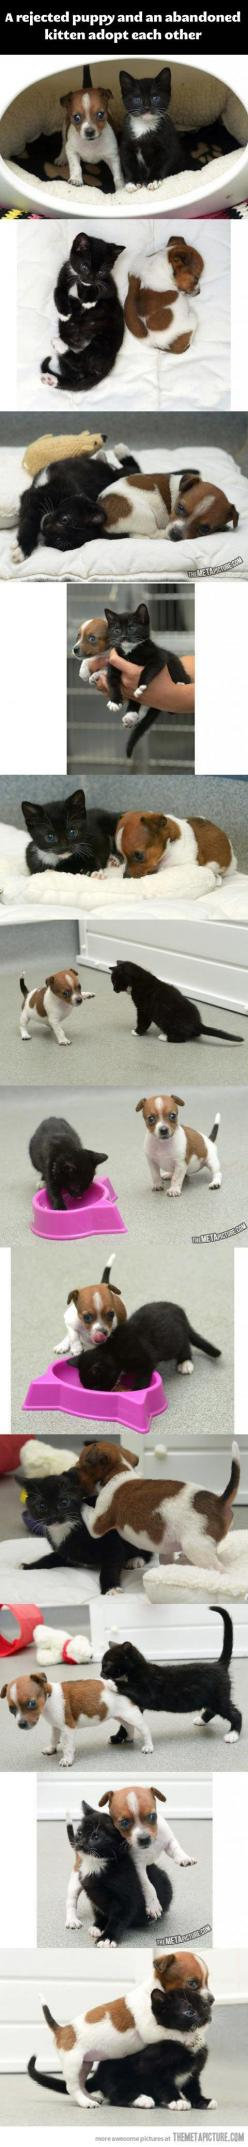 This is adorable...: Cuteness Overload, Best Friends, Kitten Adopt, Pet, Baby Animal, Puppy, Cats Dogs, Kitty, Cats Kittens